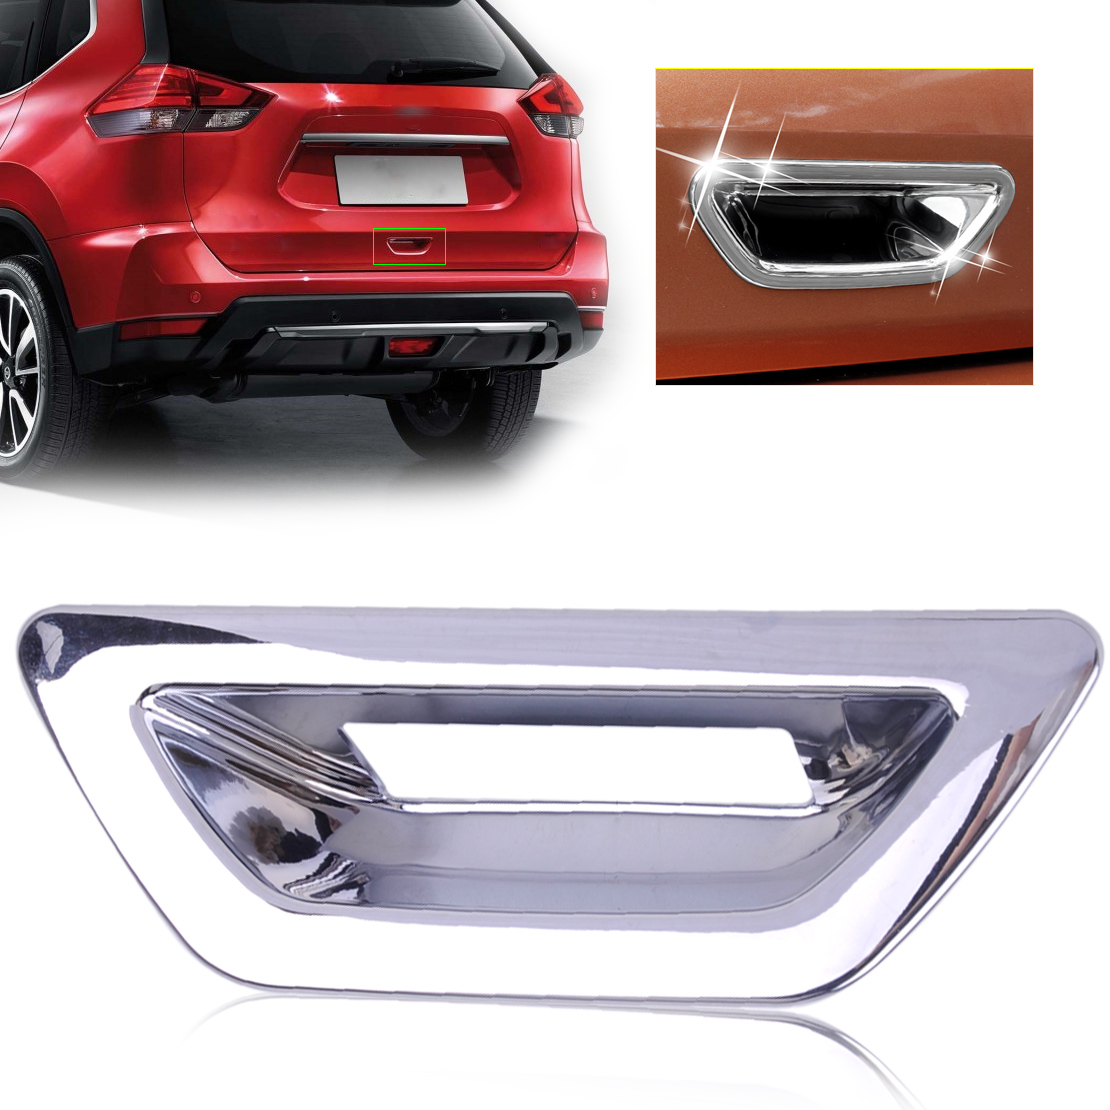 Chrome Rear Trunk Door Bowl Handle Cover Trim for 2014-2017 Nissan Rogue X-Trail